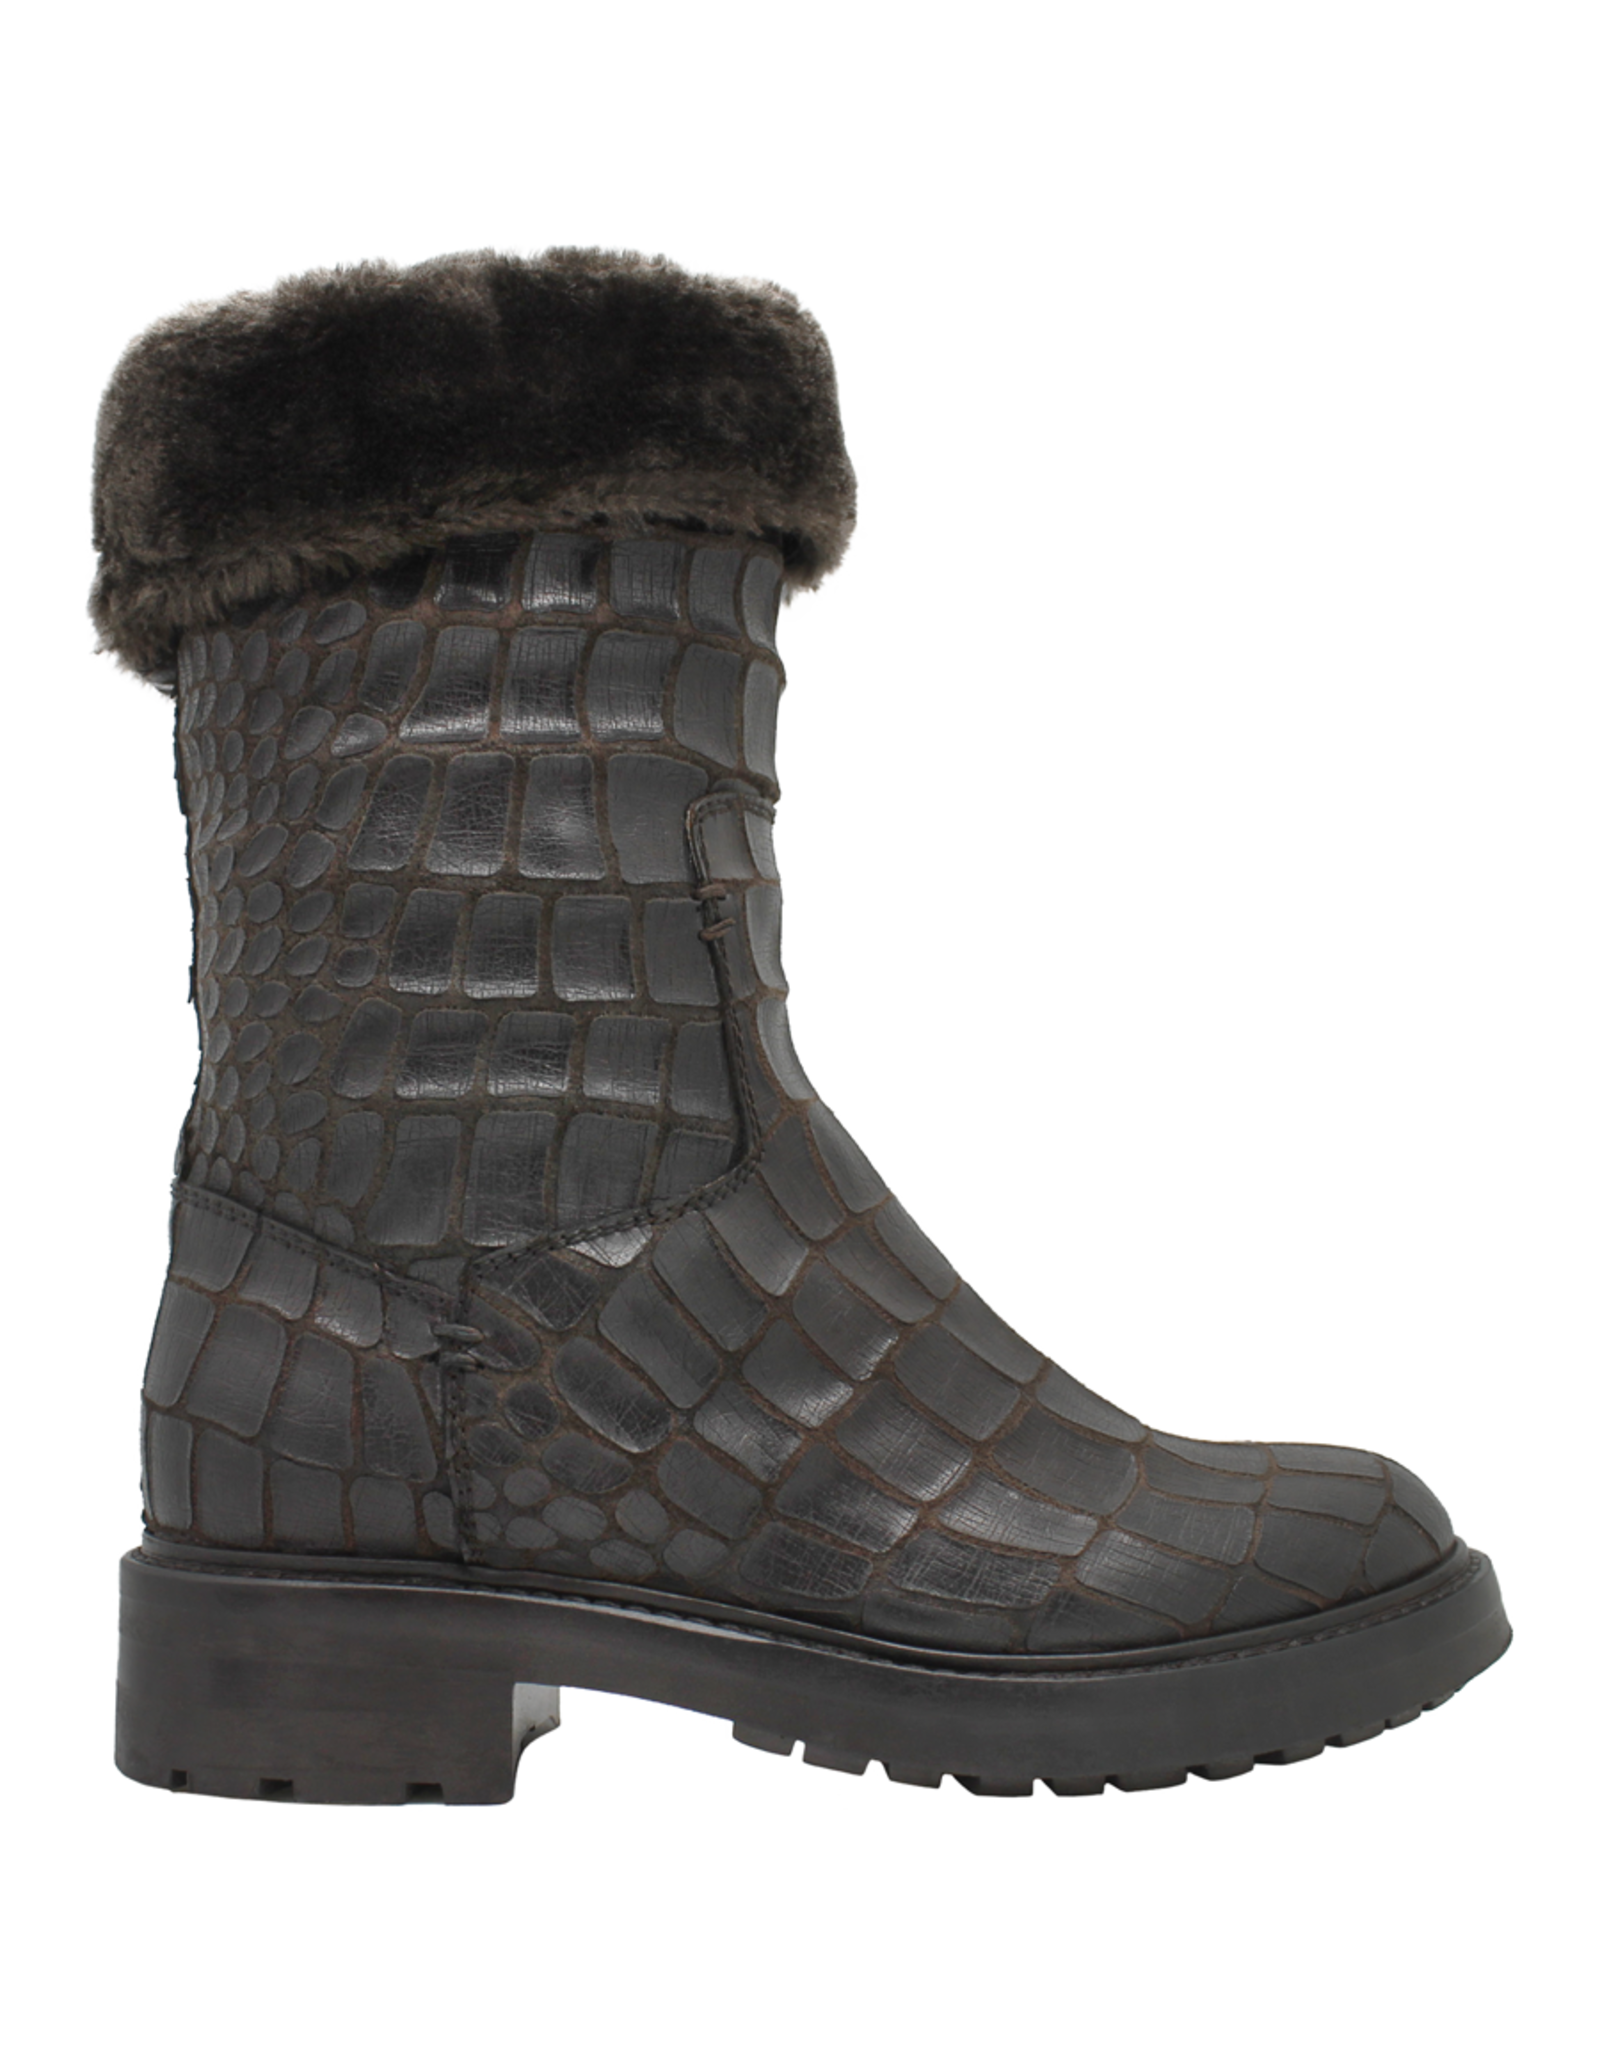 Strategia Strategia Brown Gator Fur Lined Pull-On Tread Sole 4195